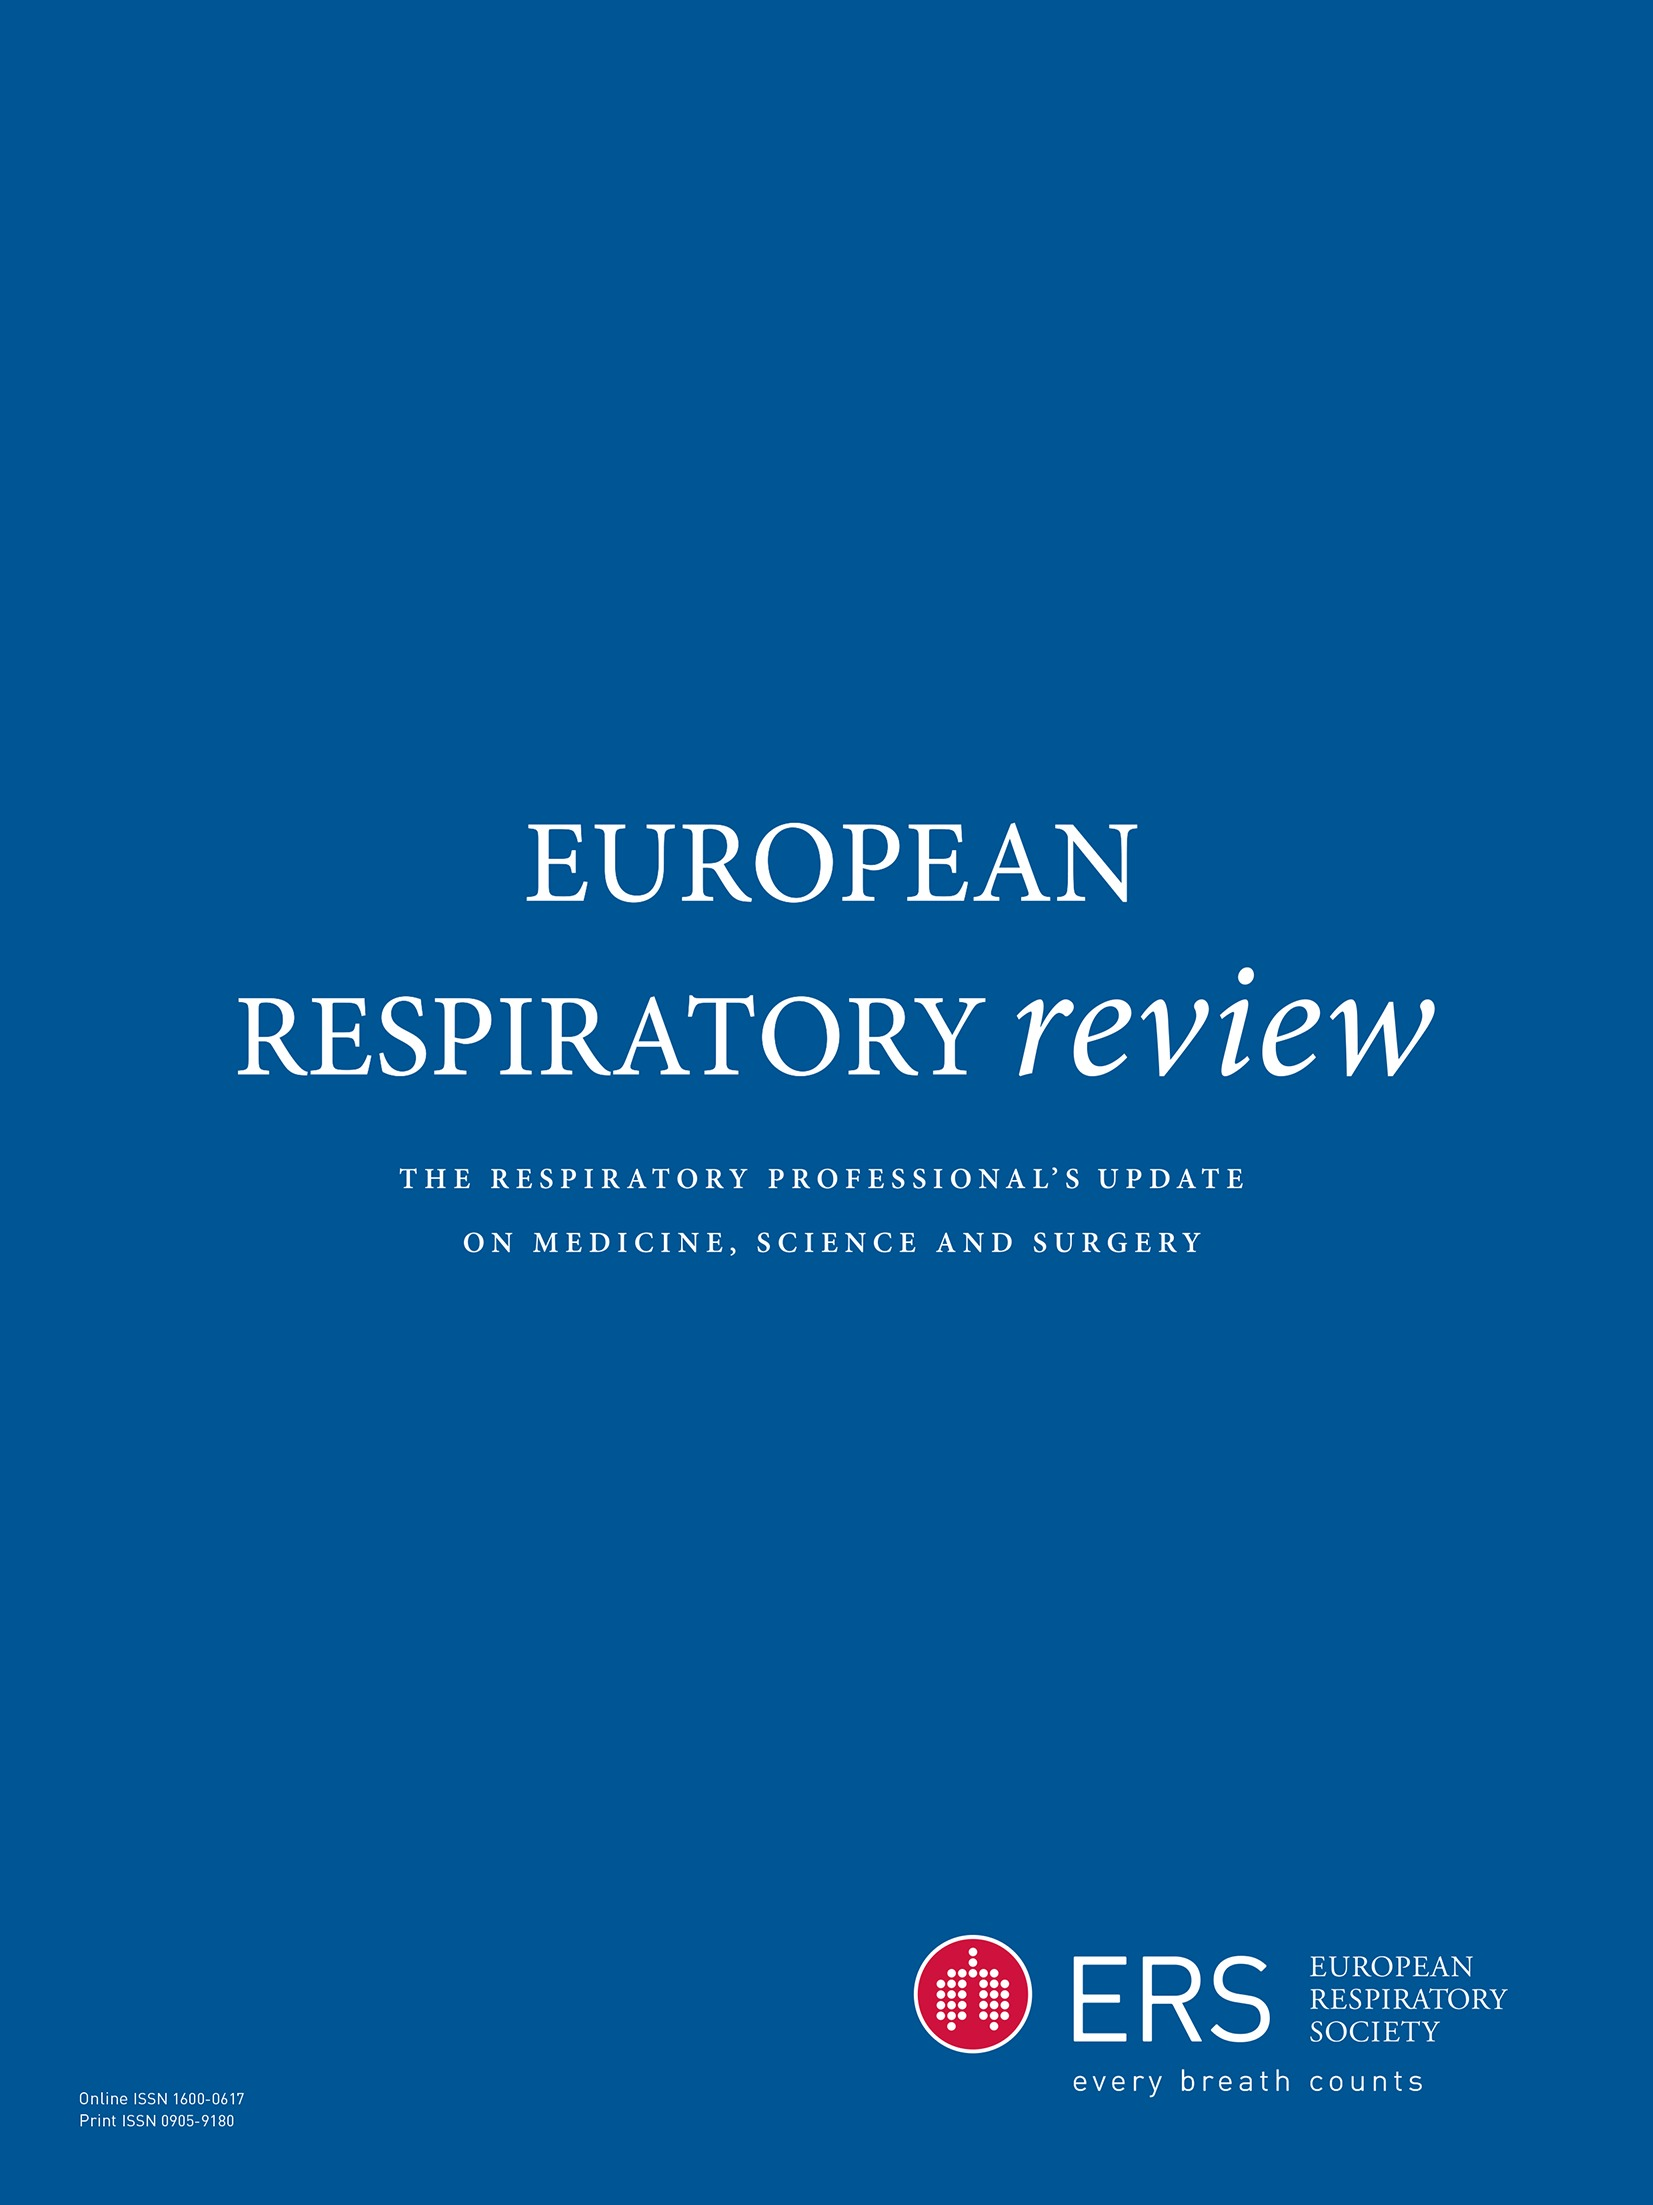 Physiology of the lung in idiopathic pulmonary fibrosis | European ...